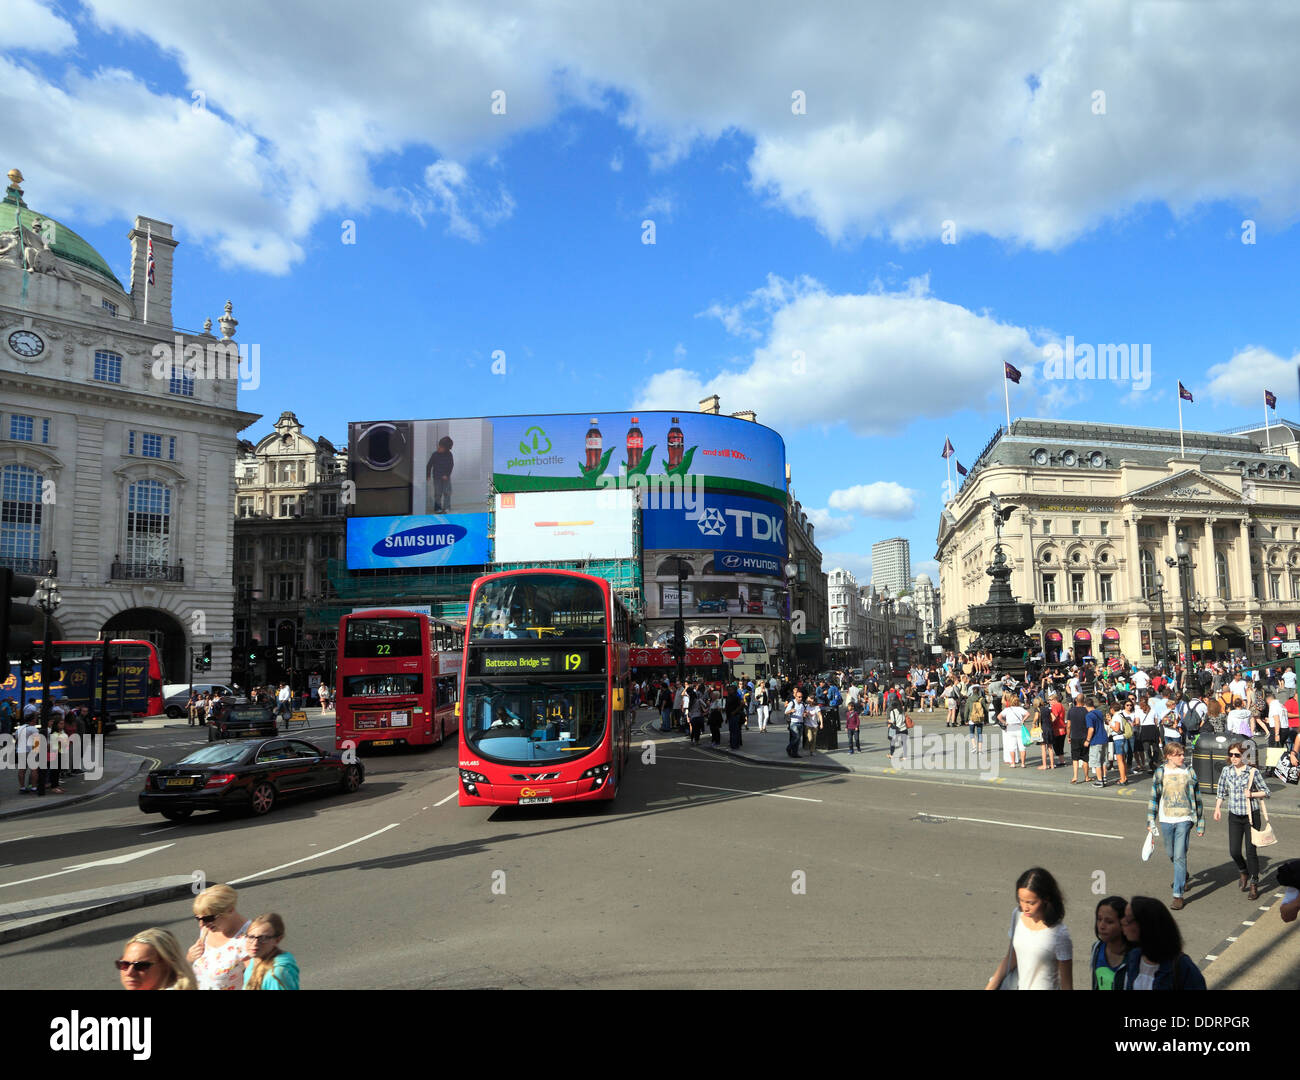 PIccadilly Circus with statue of Eros in London - Stock Image